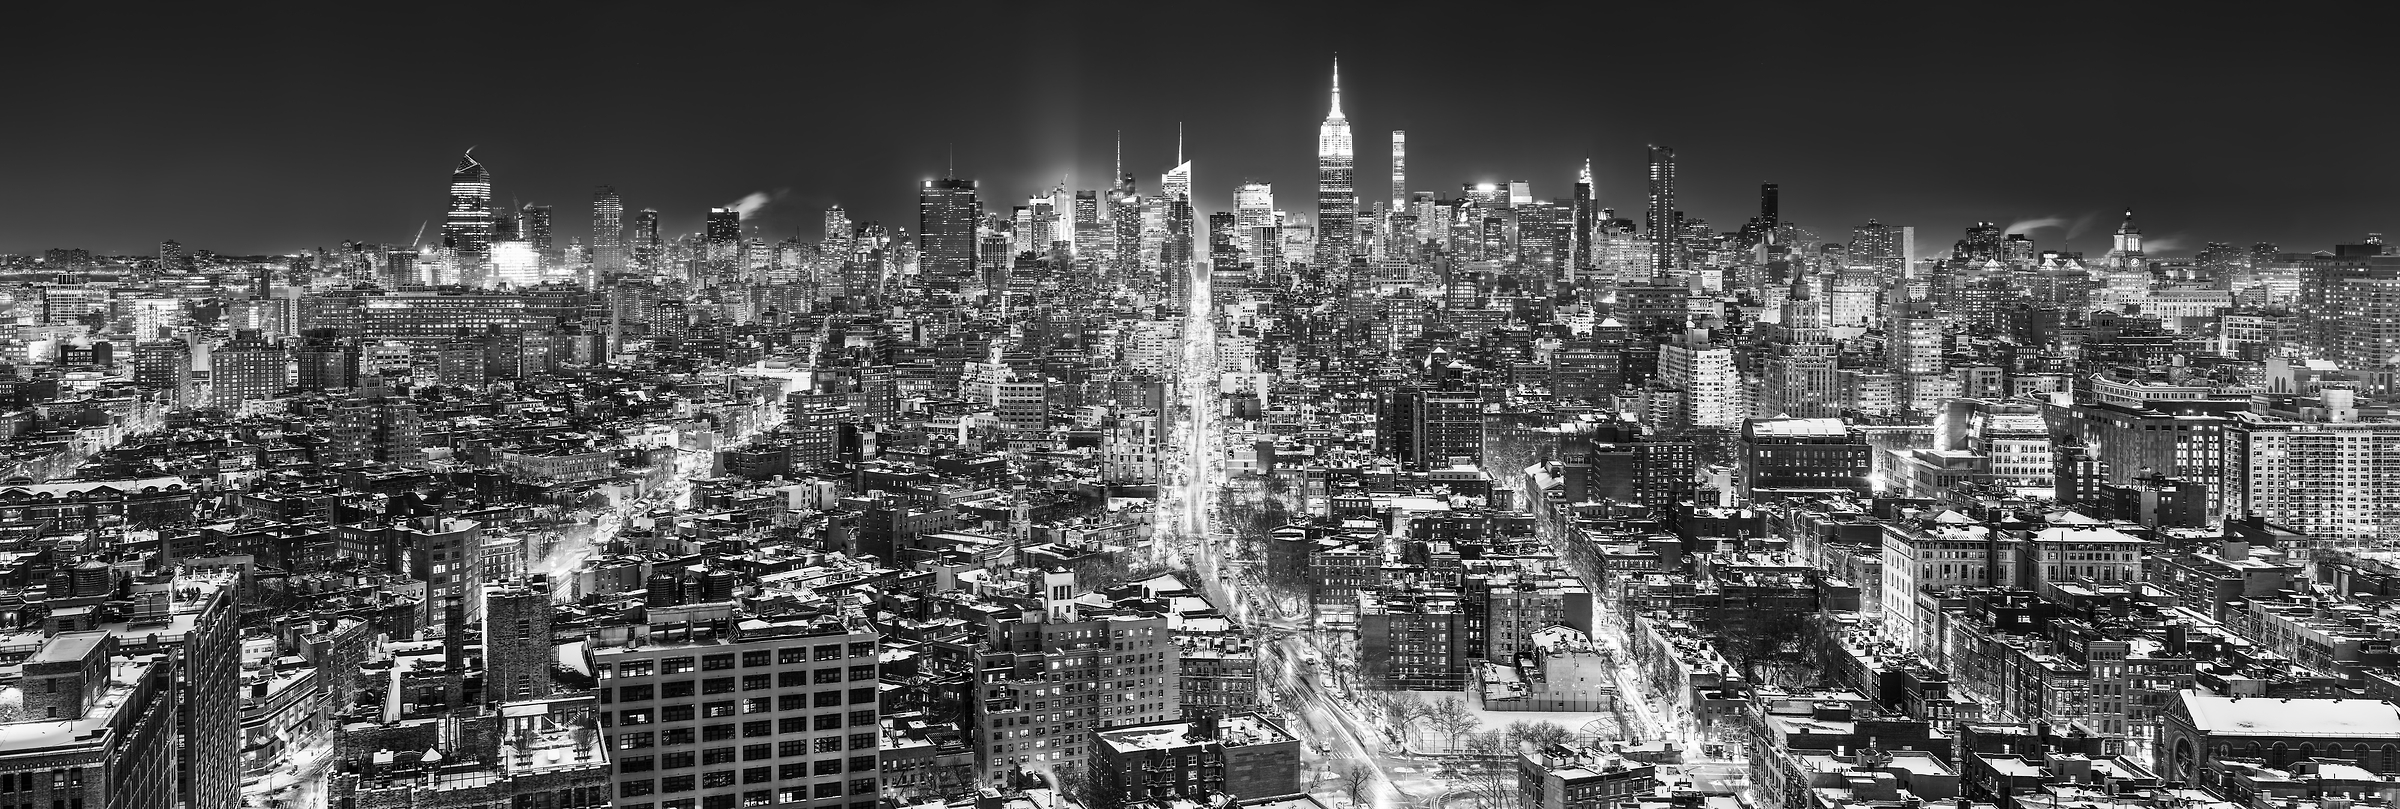 5,910 megapixels! A very high resolution, large-format VAST photo print of the Manhattan NYC skyline in winter snow at night; black and white cityscape fine art photo created by Dan Piech in New York City